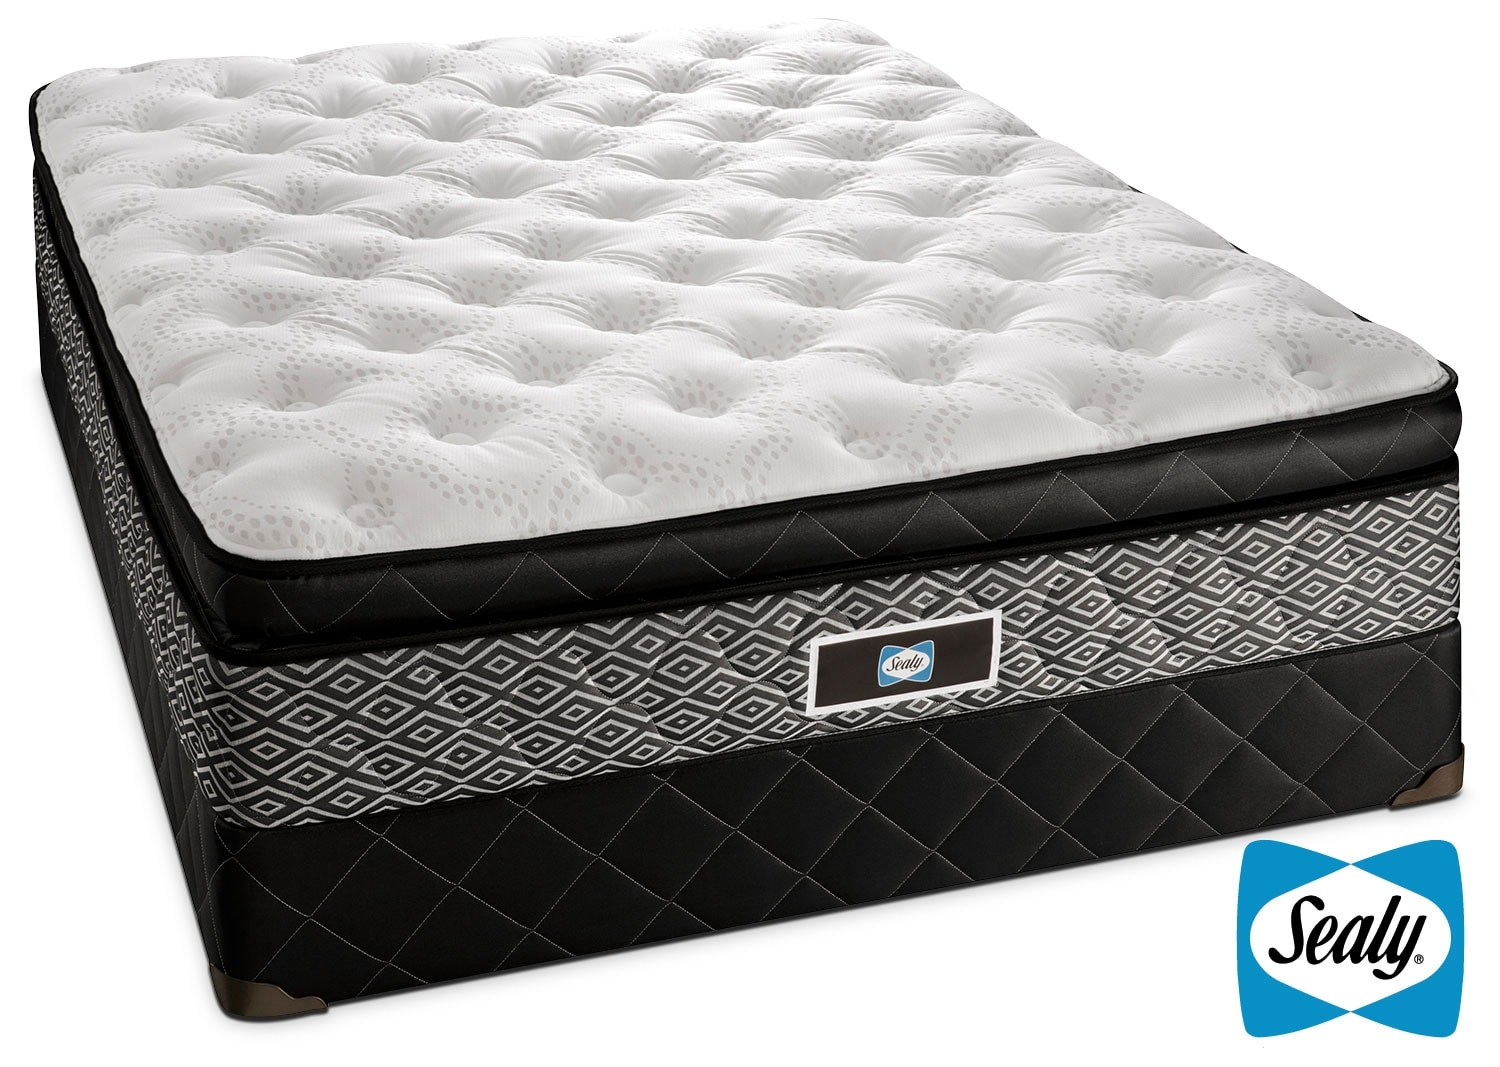 Mattresses and Bedding - Sealy Echo Firm Twin Mattress/Boxspring Set